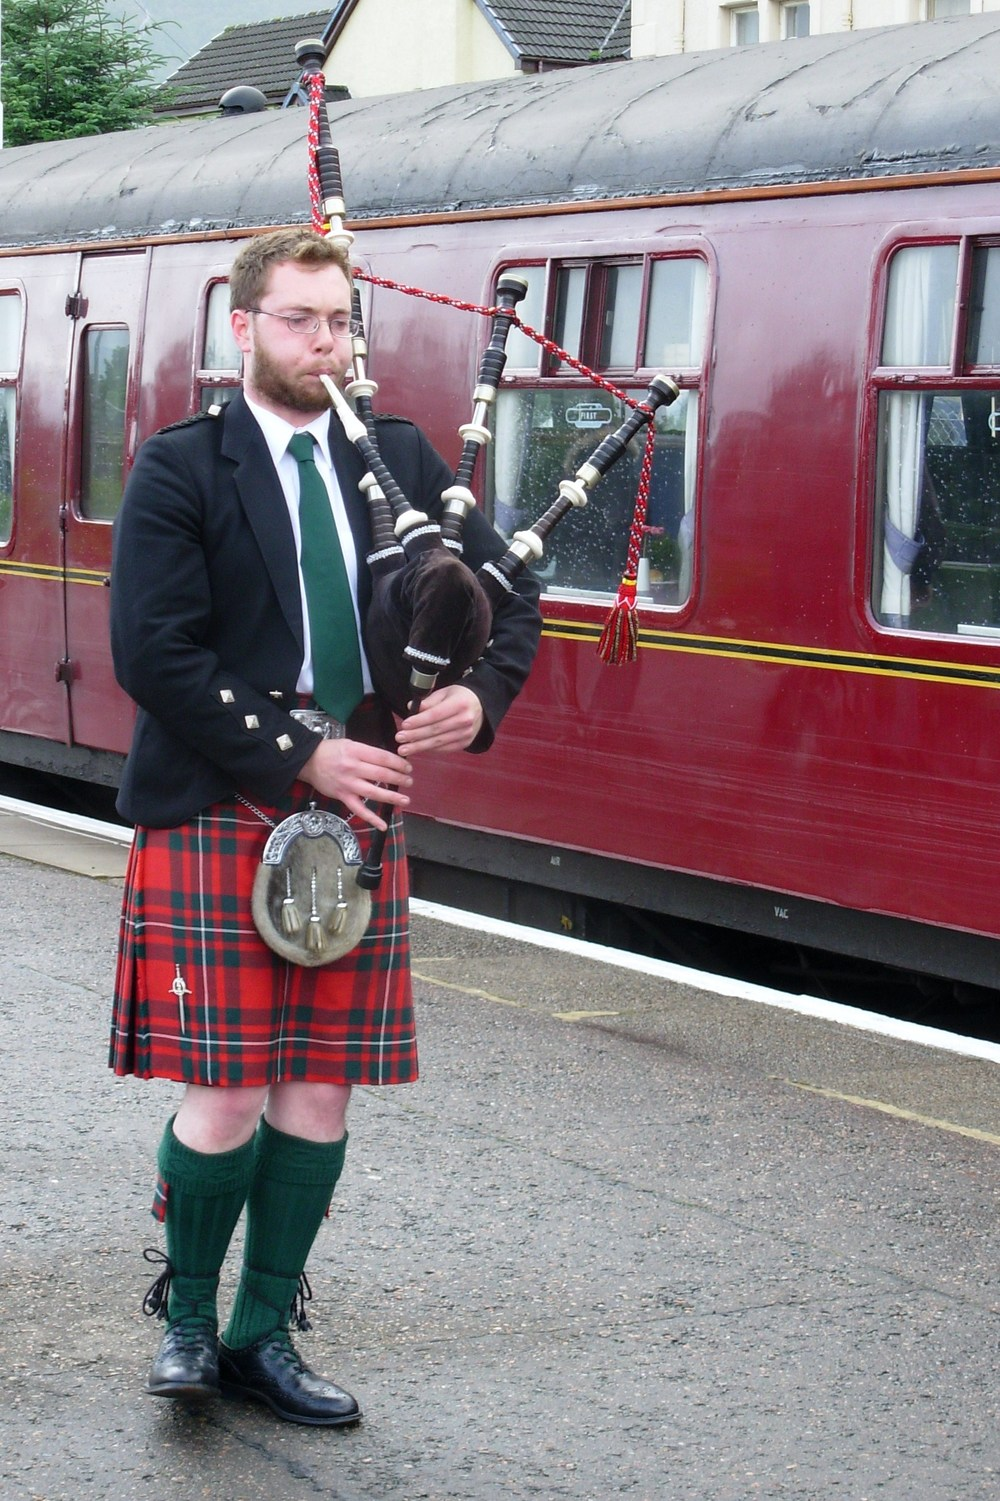 bagpiper playing at a train station